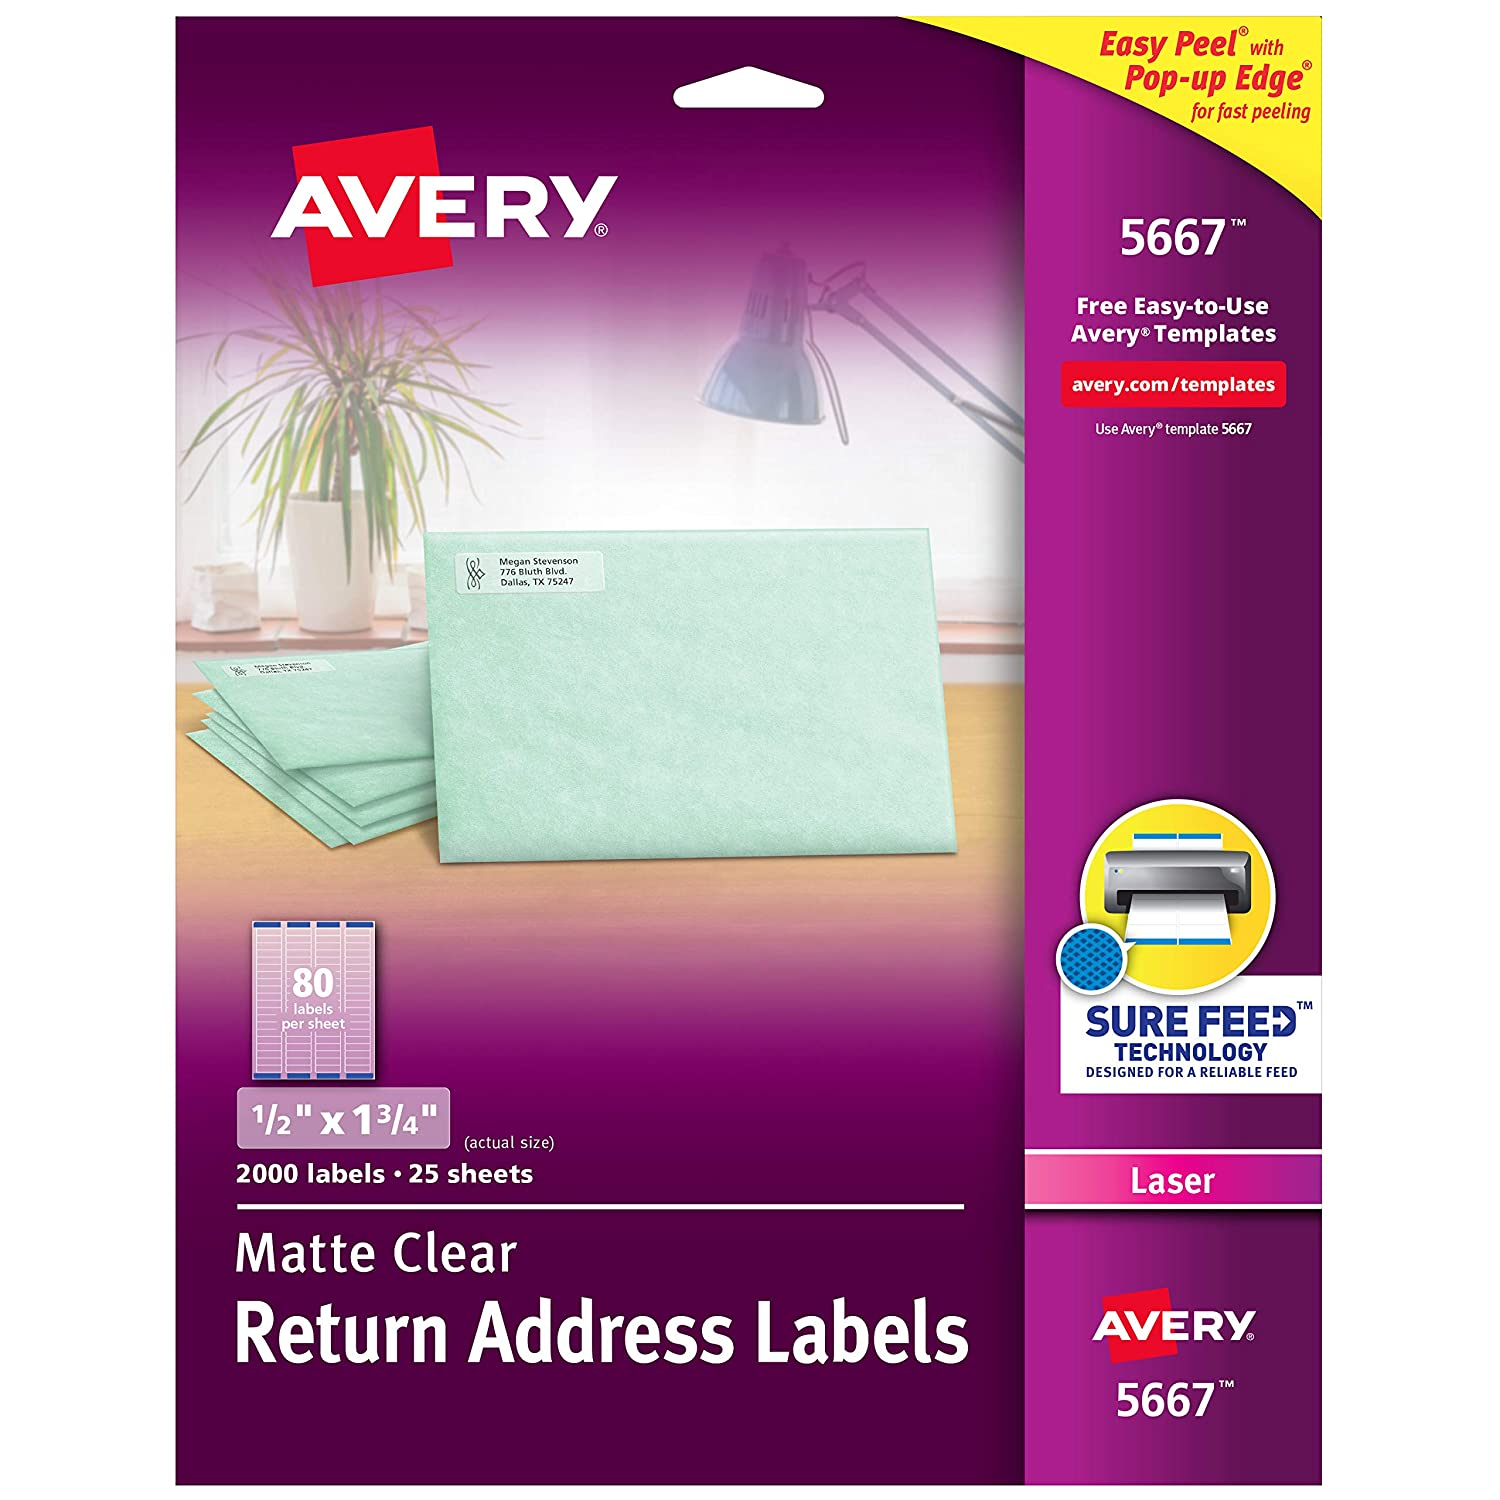 "B00004Z6JZ Avery Matte Frosted Clear Return Address Labels for Laser Printers, 1/2"" x 1-3/4"", 2,000 Labels (5667) 81hBh4CfLAL"